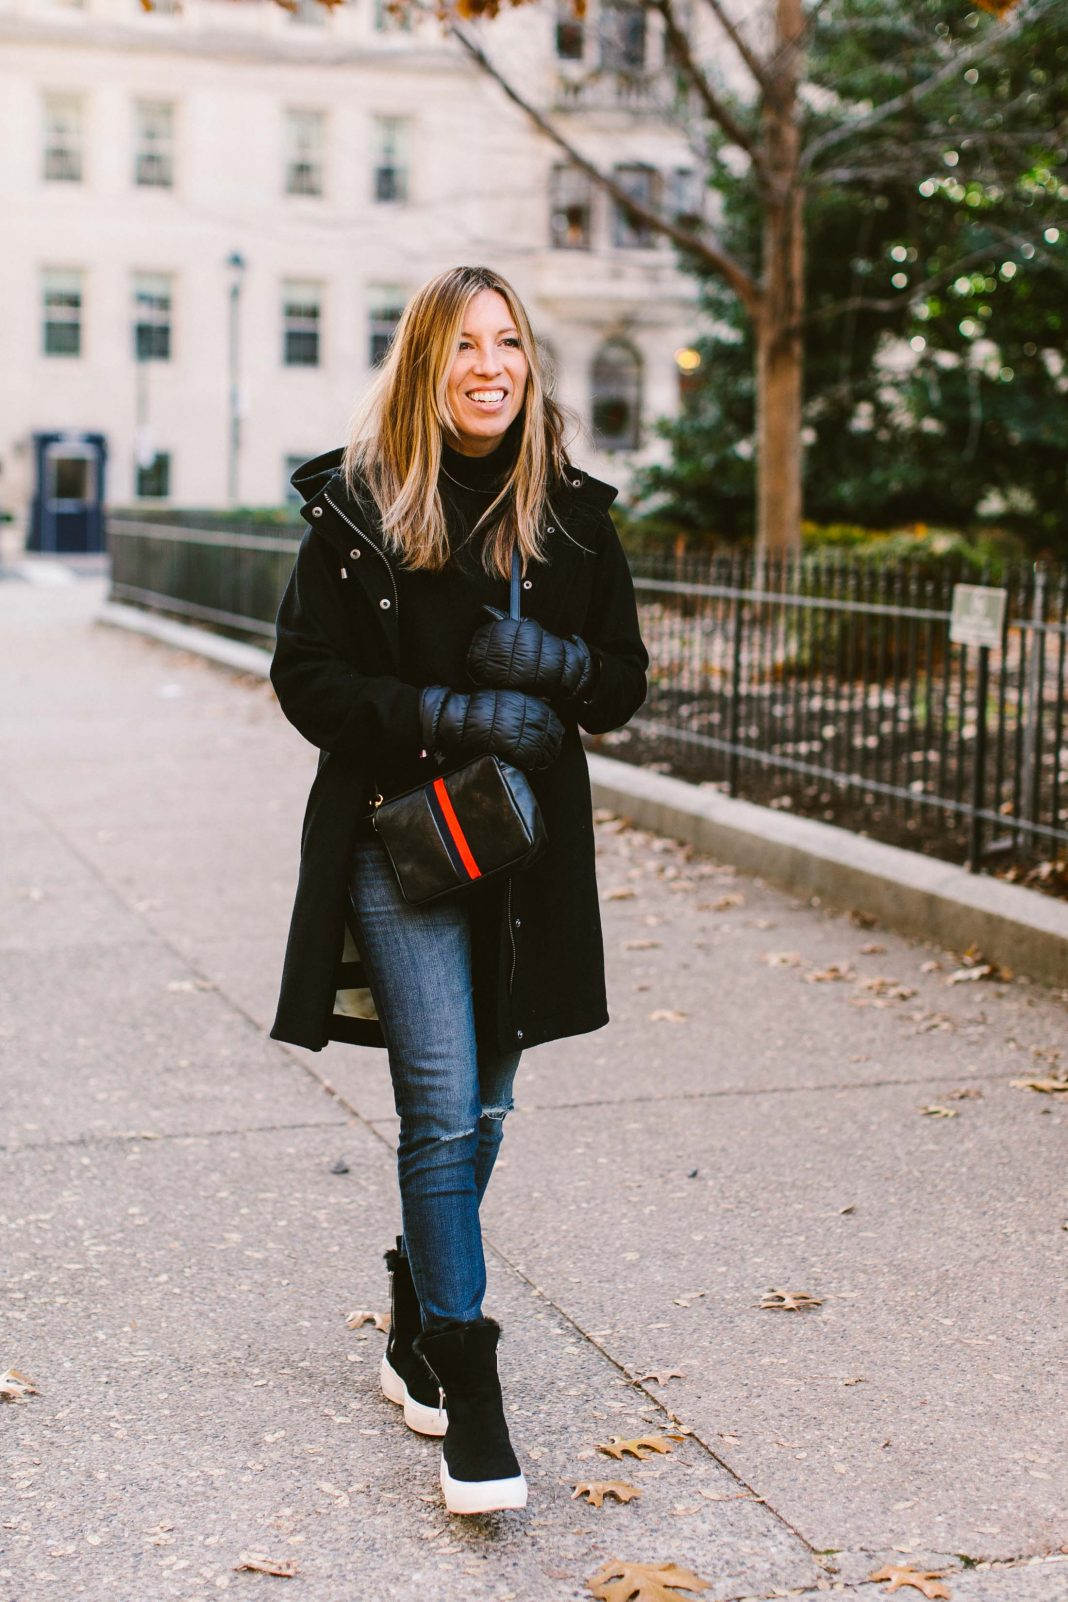 We have a winter uniform of sorts, perfect for day & date night. The jeans, boots & bag get tweaked, but the sweater? Always a black cashmere turtleneck.